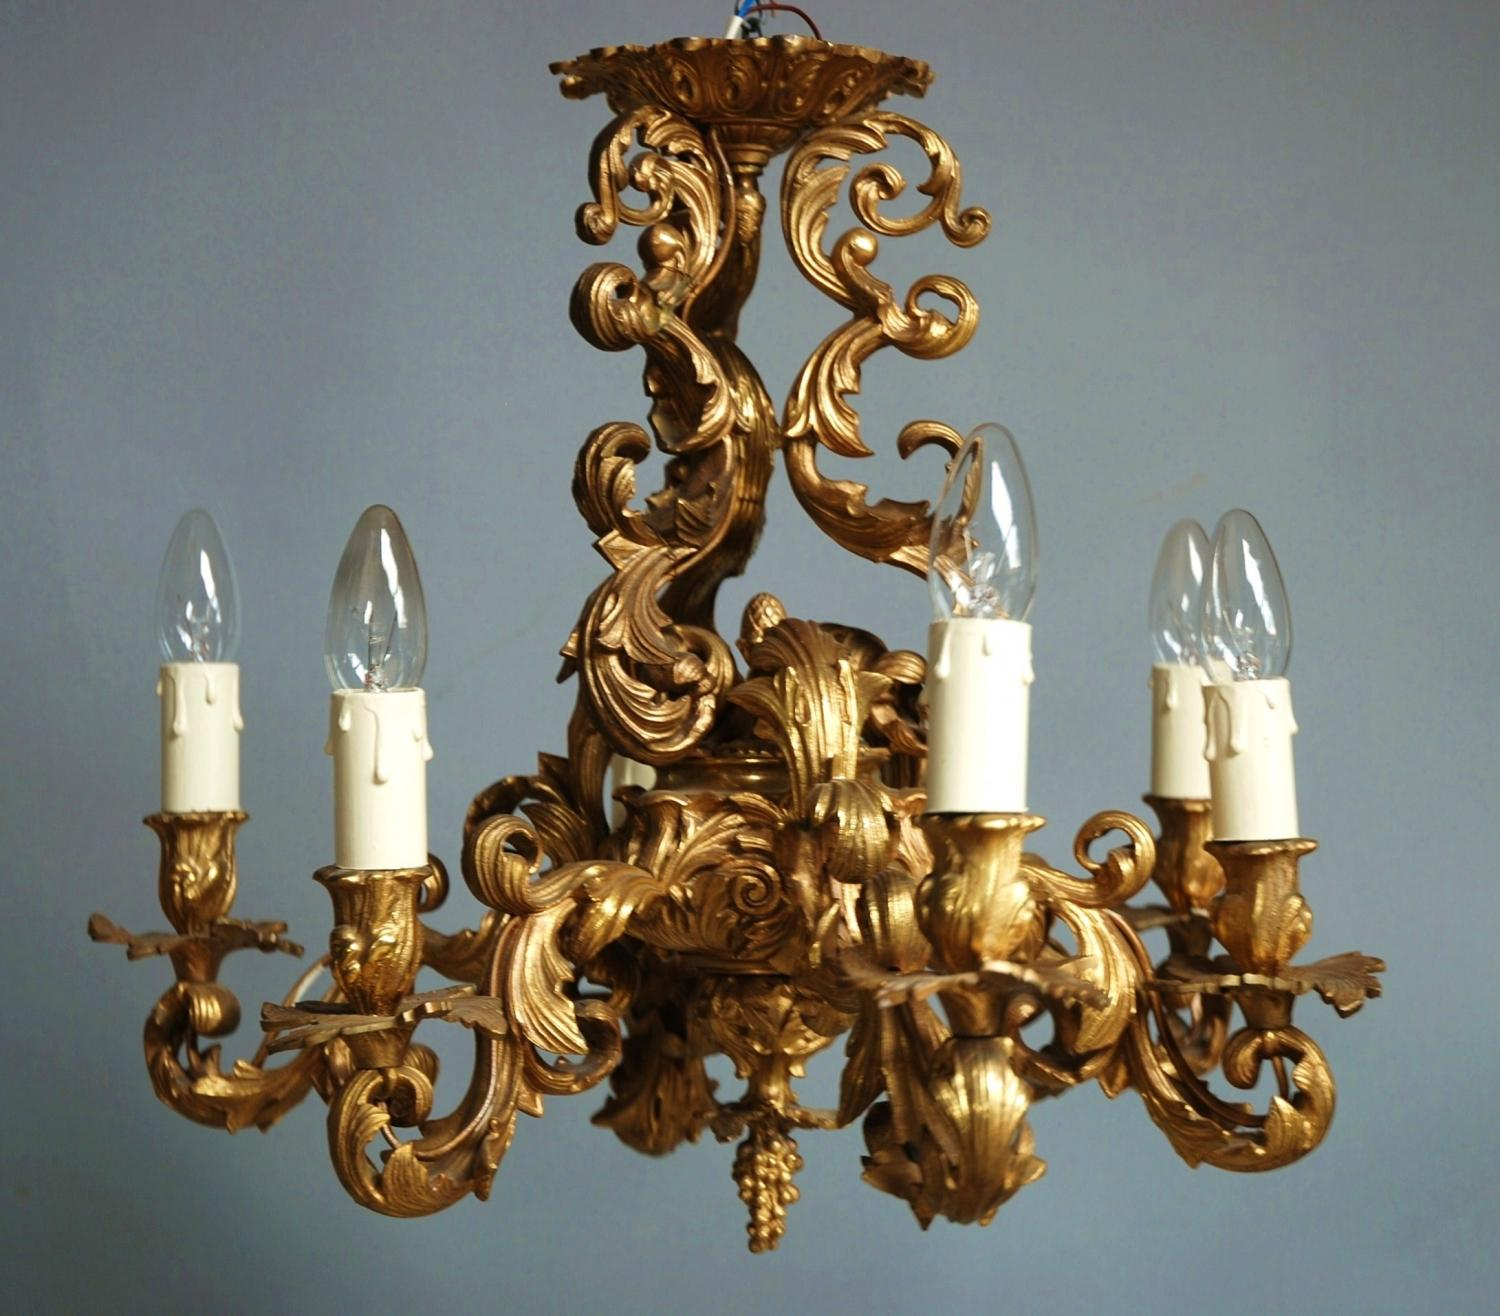 Rococo style 19thc French ormolu chandelier in SOLD ARCHIVE